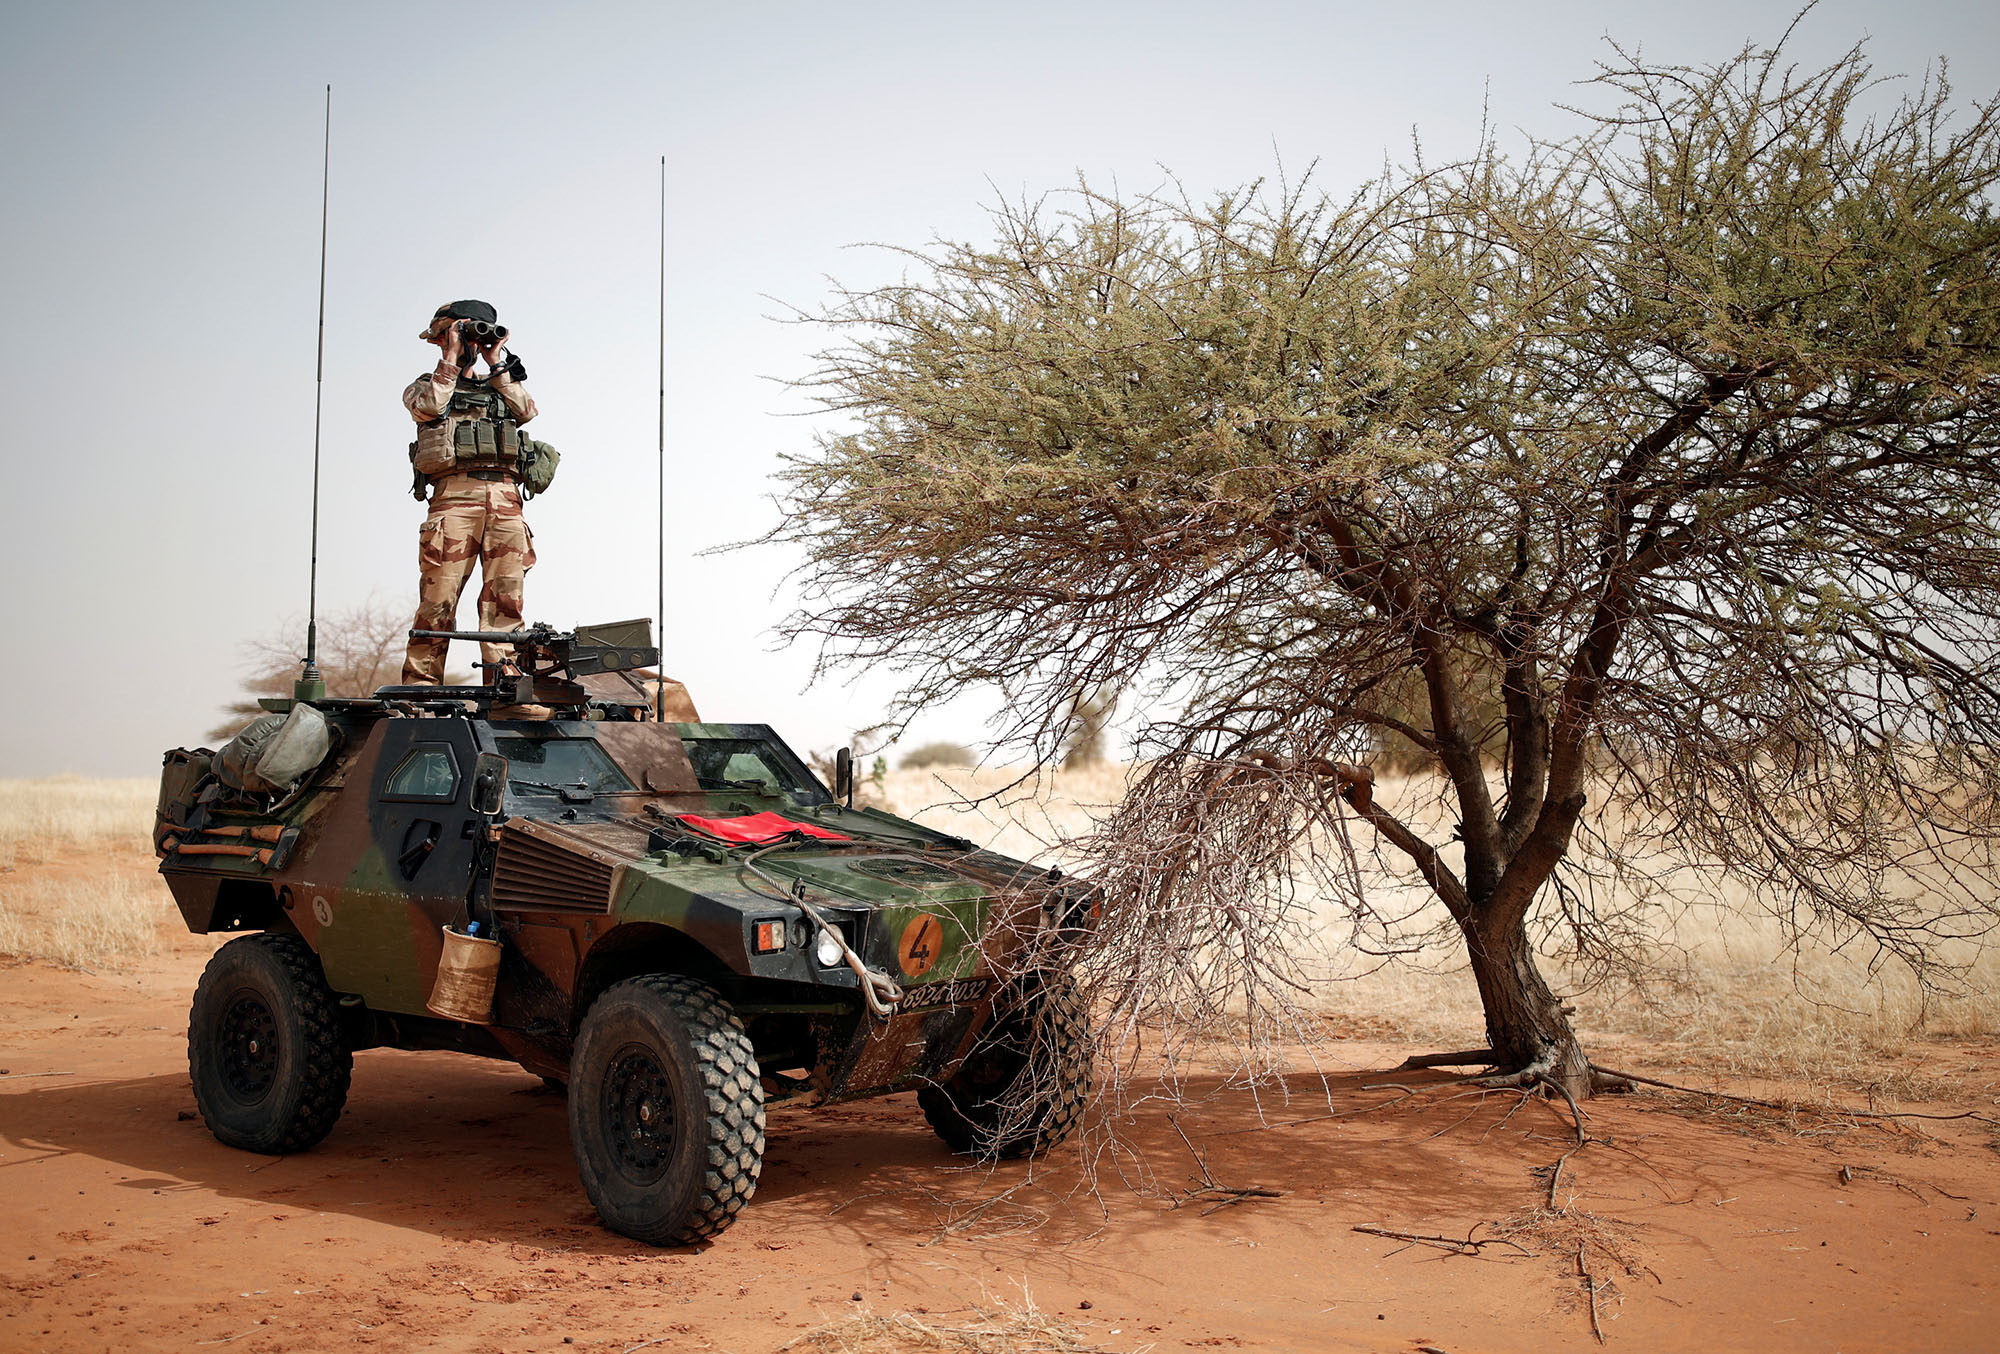 Operation Barkhane: France's Counter-Terrorism Forces in